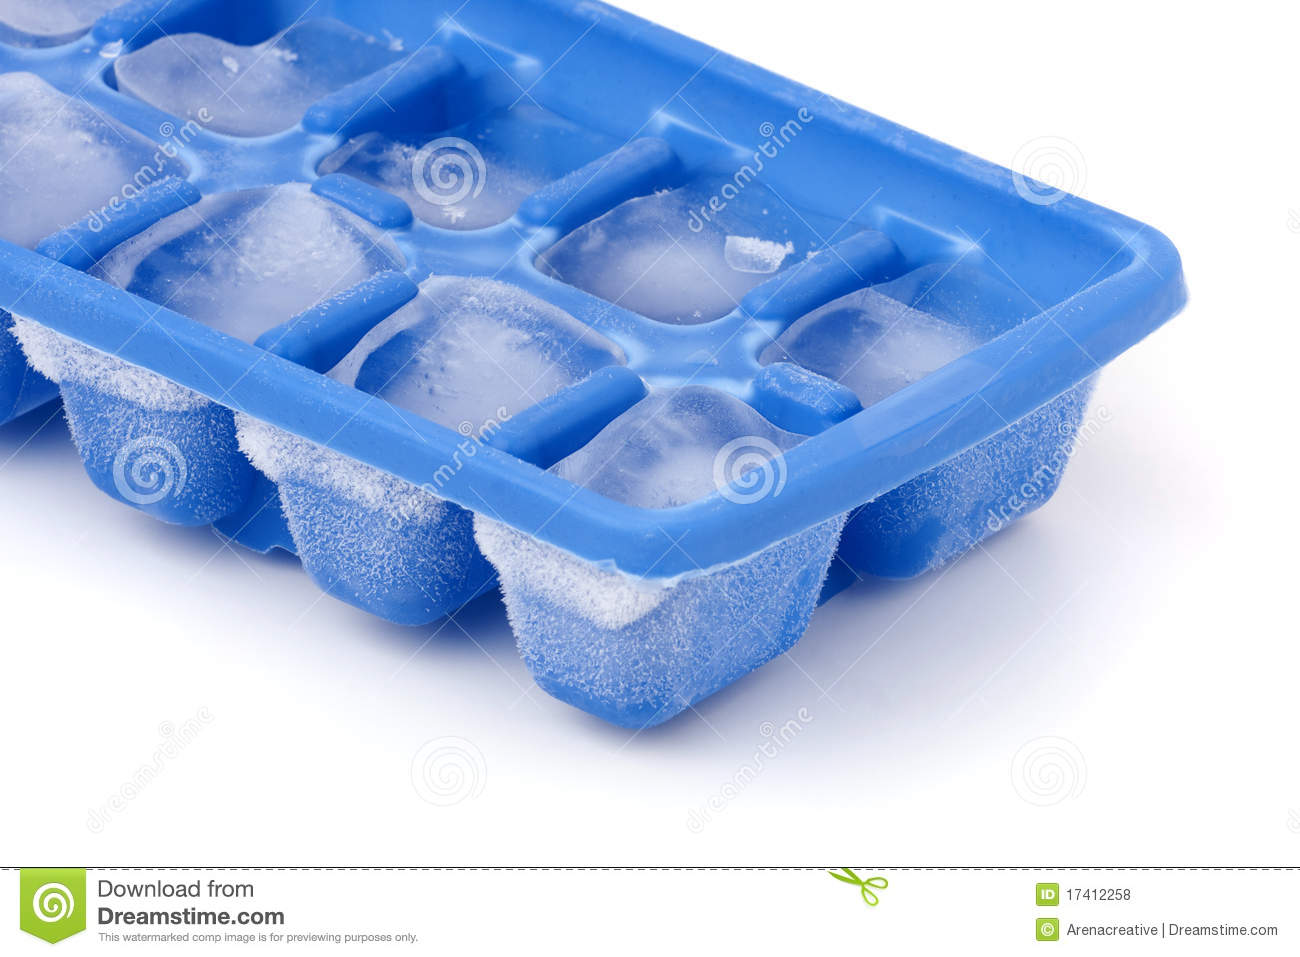 blue plastic ice cube tray with frost on it isolated over a white ...